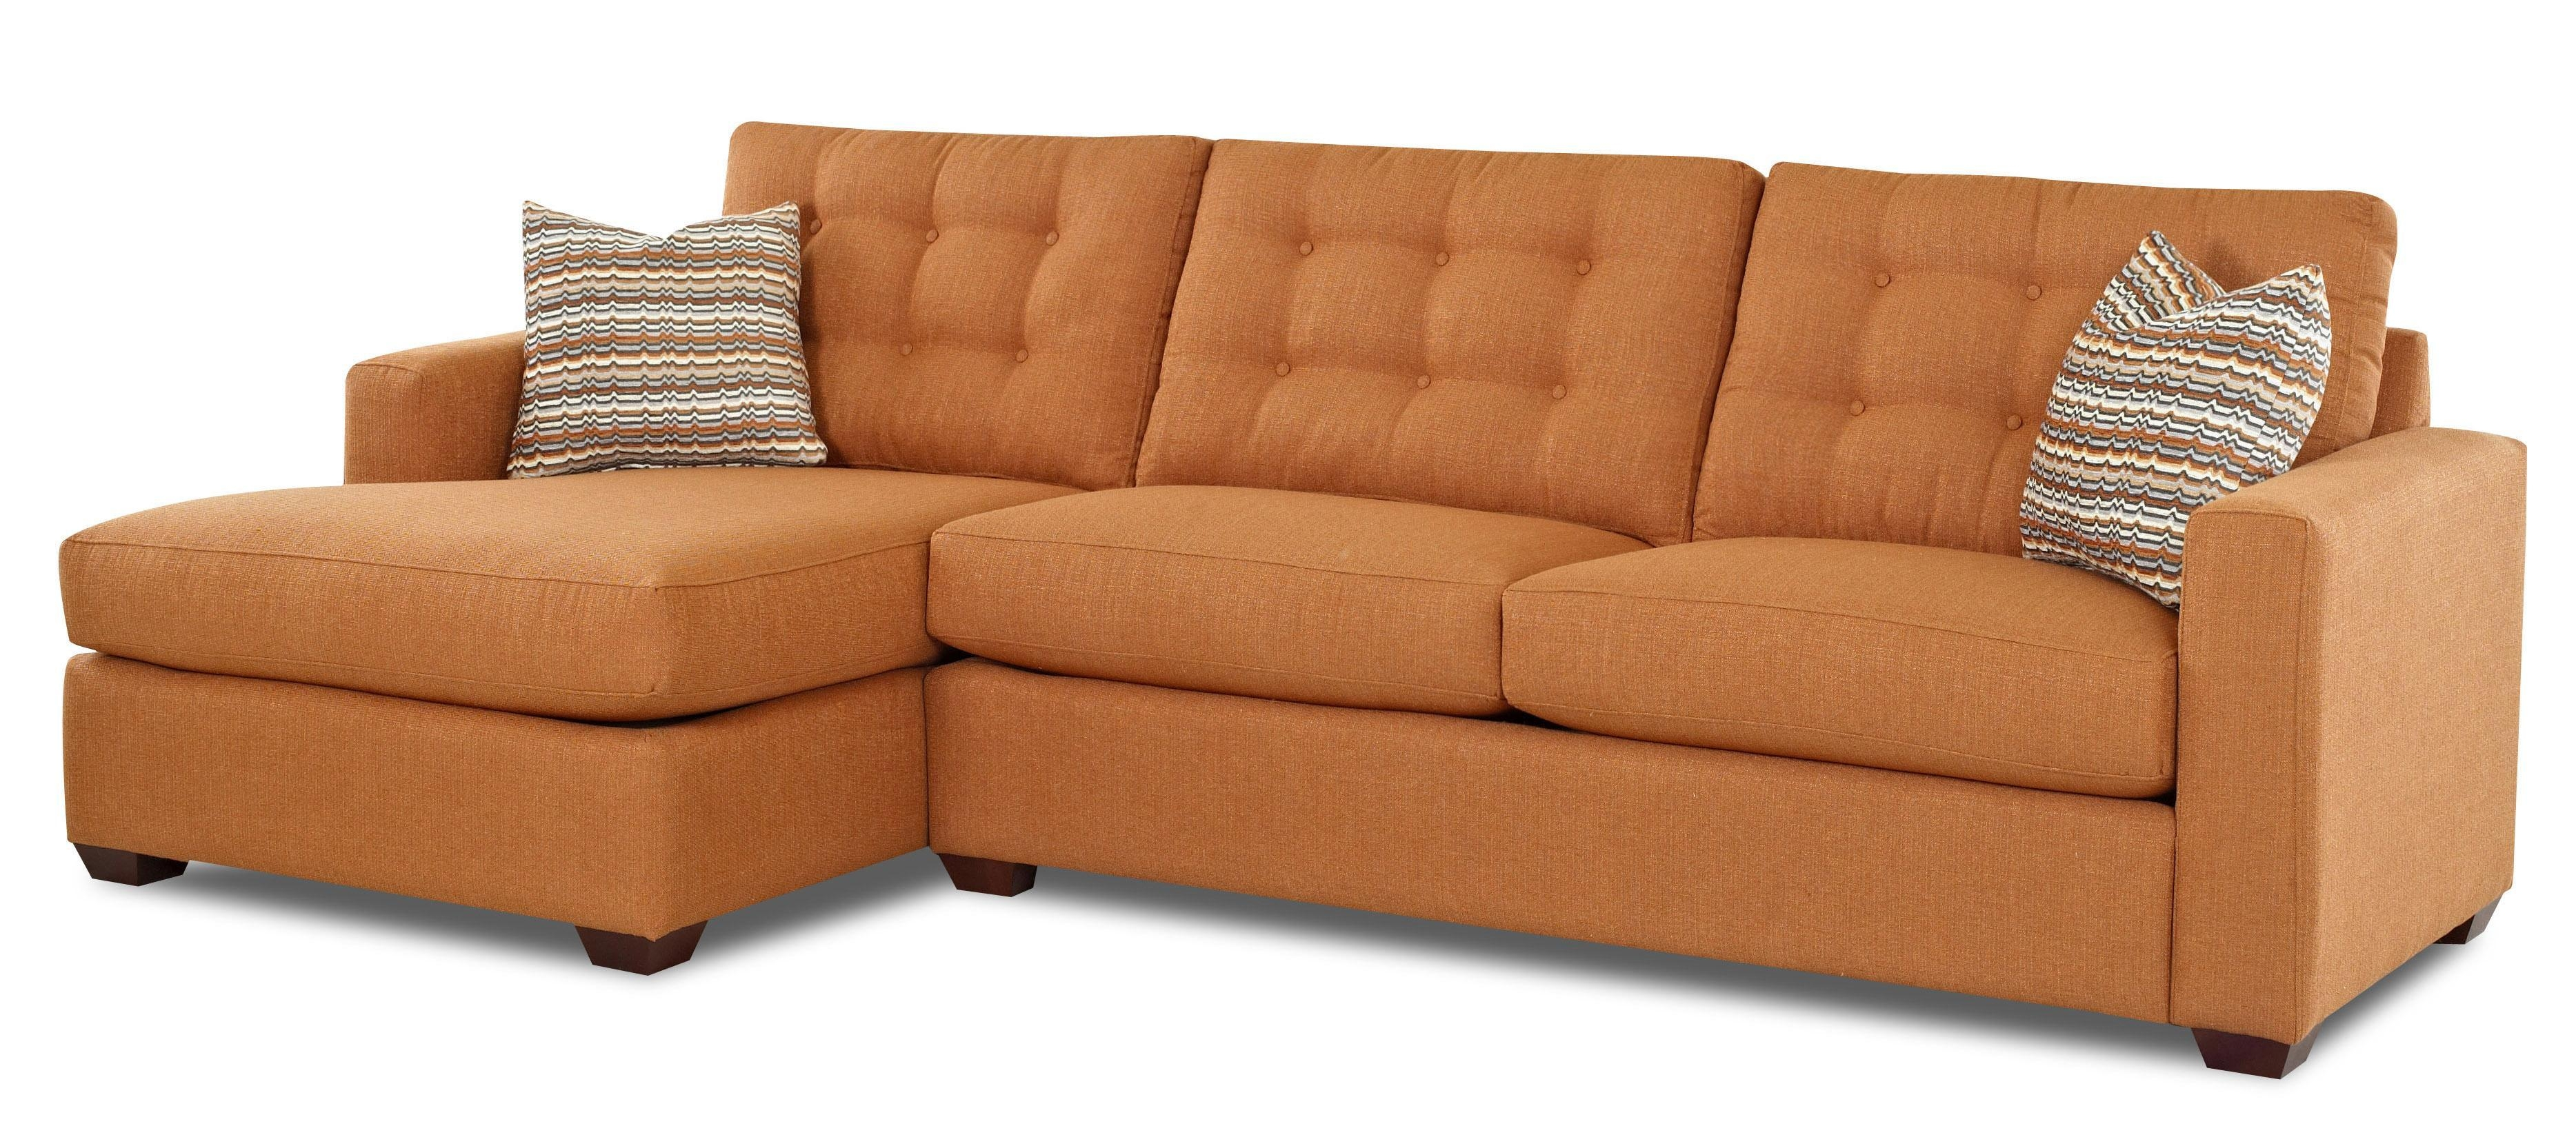 Chaise Lounge Sofa With Recliner Slipcovers Sofas On Sale | Deseosol In Chaise Sofas (Image 4 of 20)